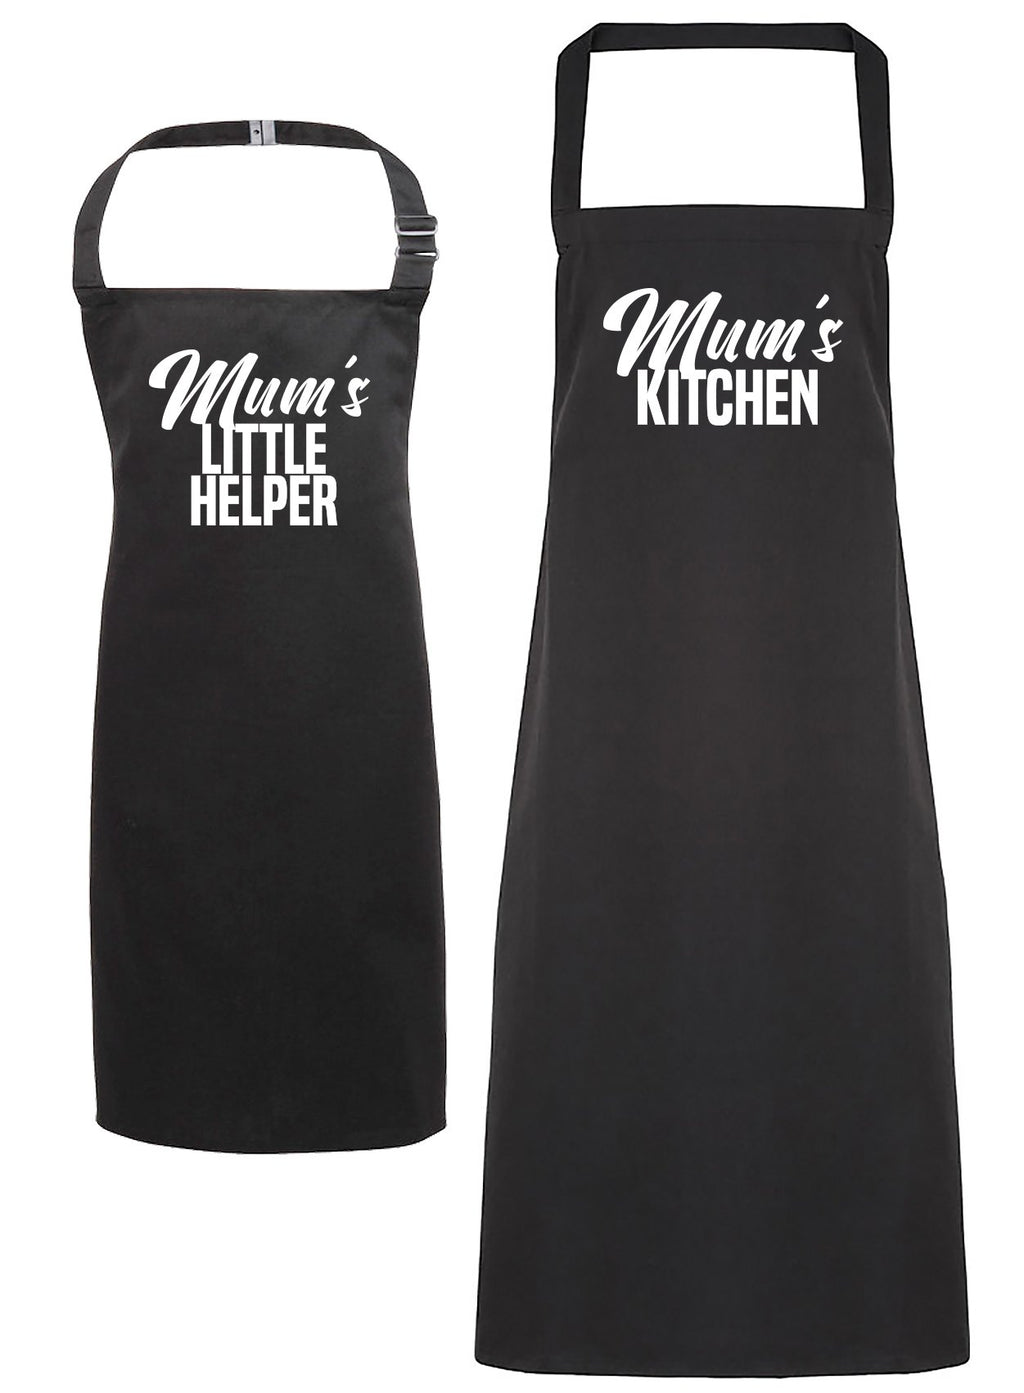 Mum's Kitchen & Mum's Little Helper - Womens & Kids Apron Set